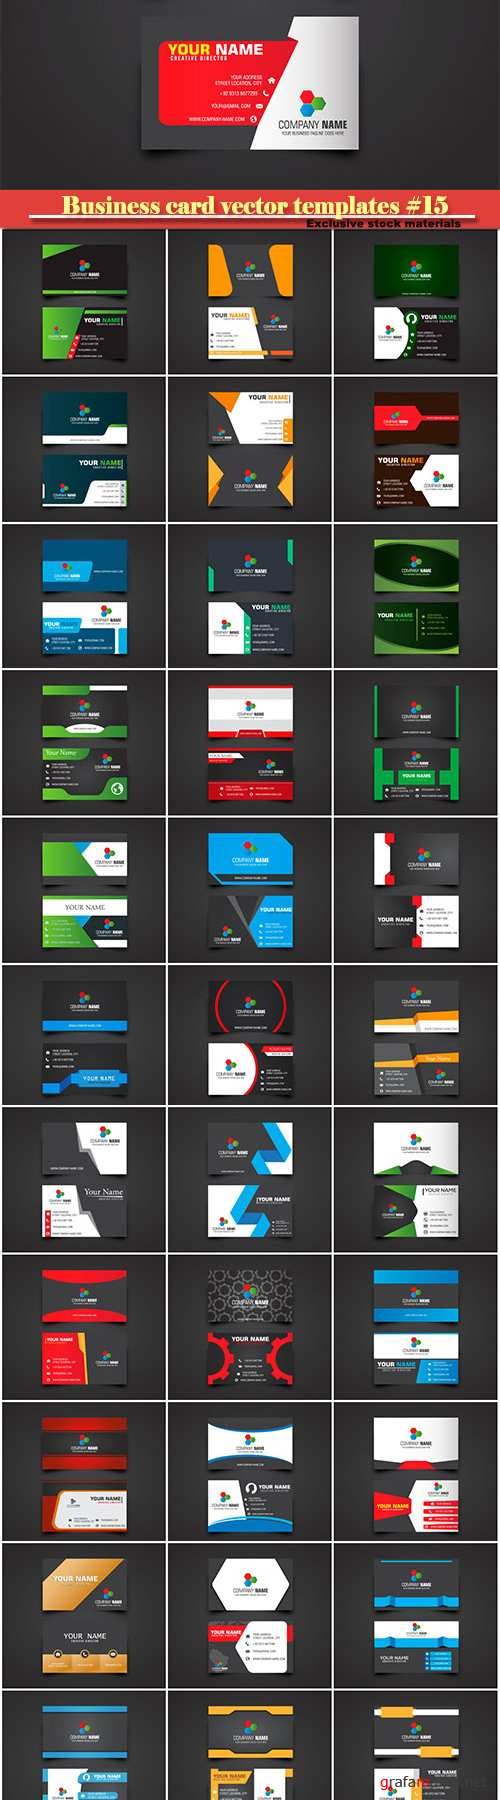 Business card vector templates #15